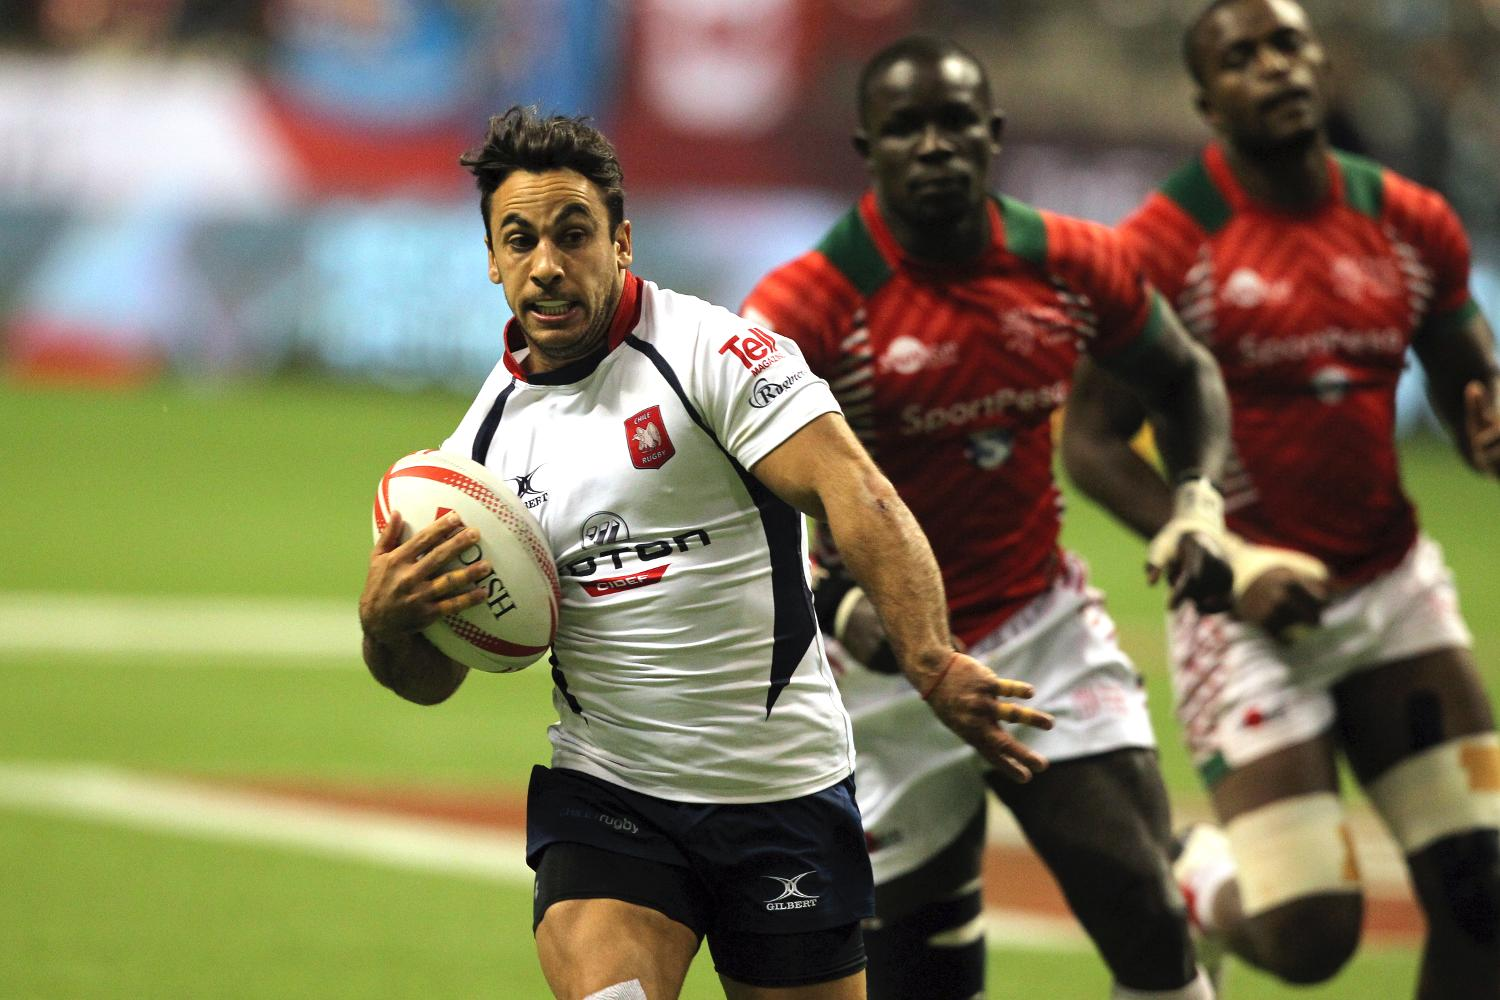 HSBC Canada Sevens, Men's - Chile v Kenya